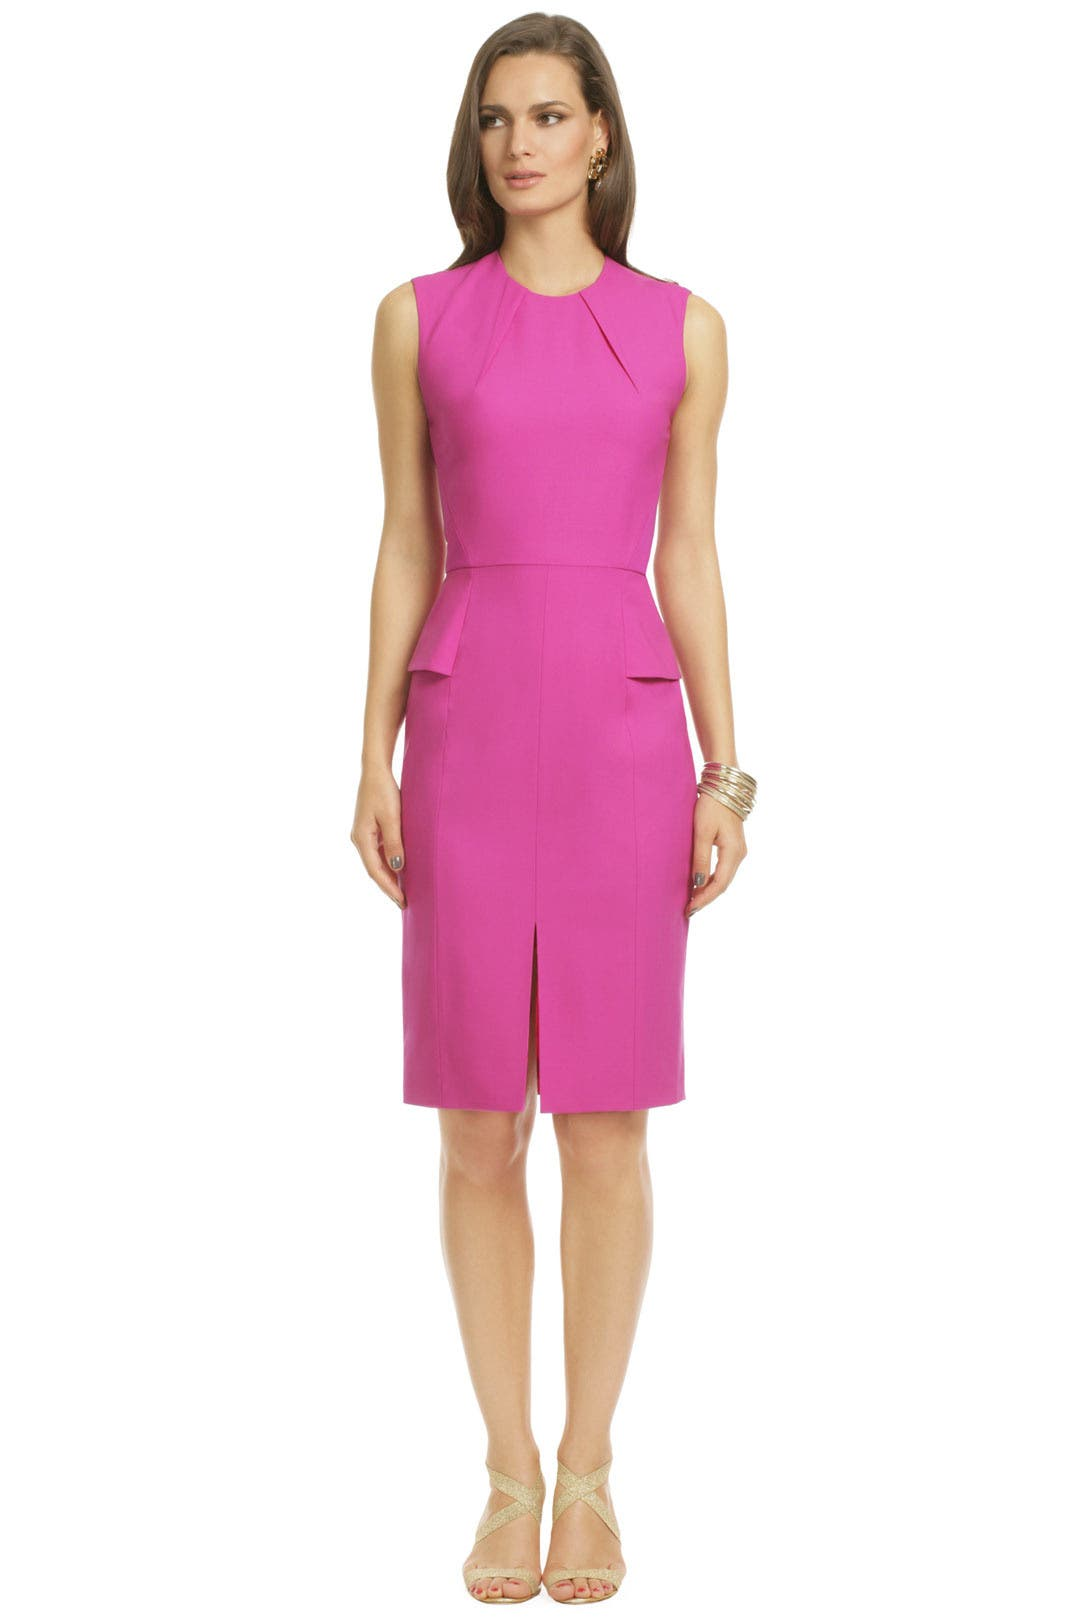 Stellar Pink Sheath by Rachel Roy